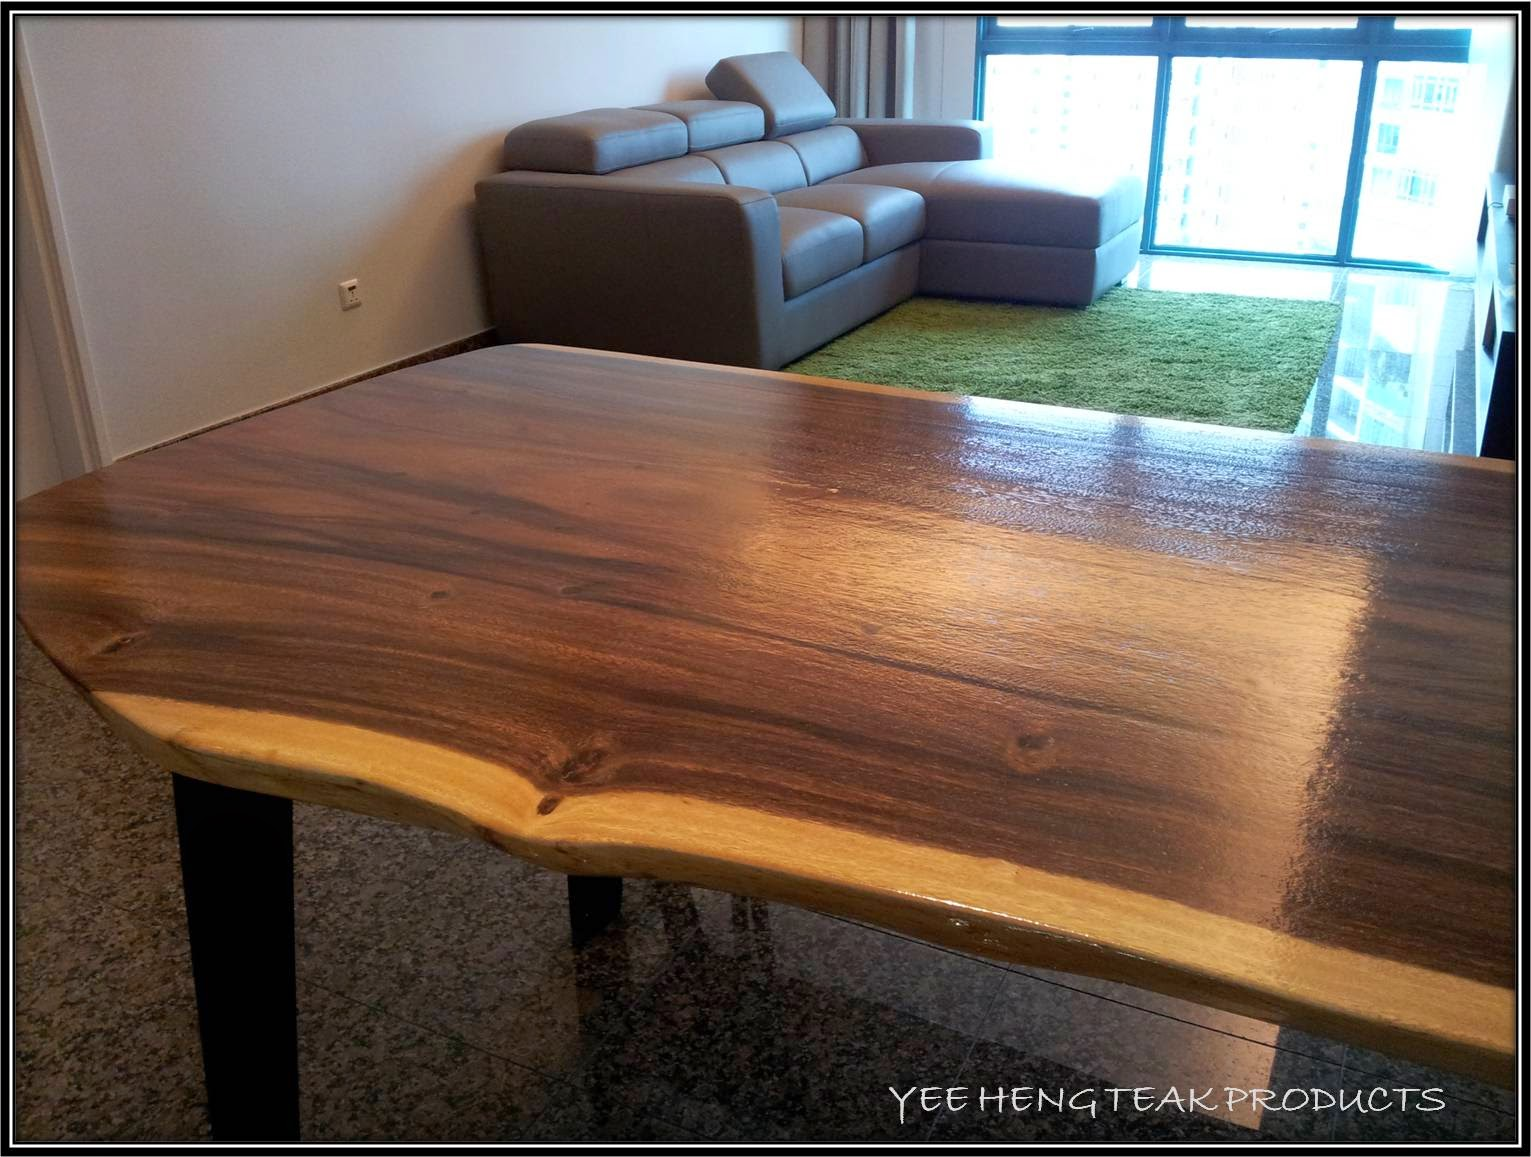 The thickness is about 2 inch which is sturdy and lighter as compared to those big live edge table. Just in case you needed to create space for the extra ...